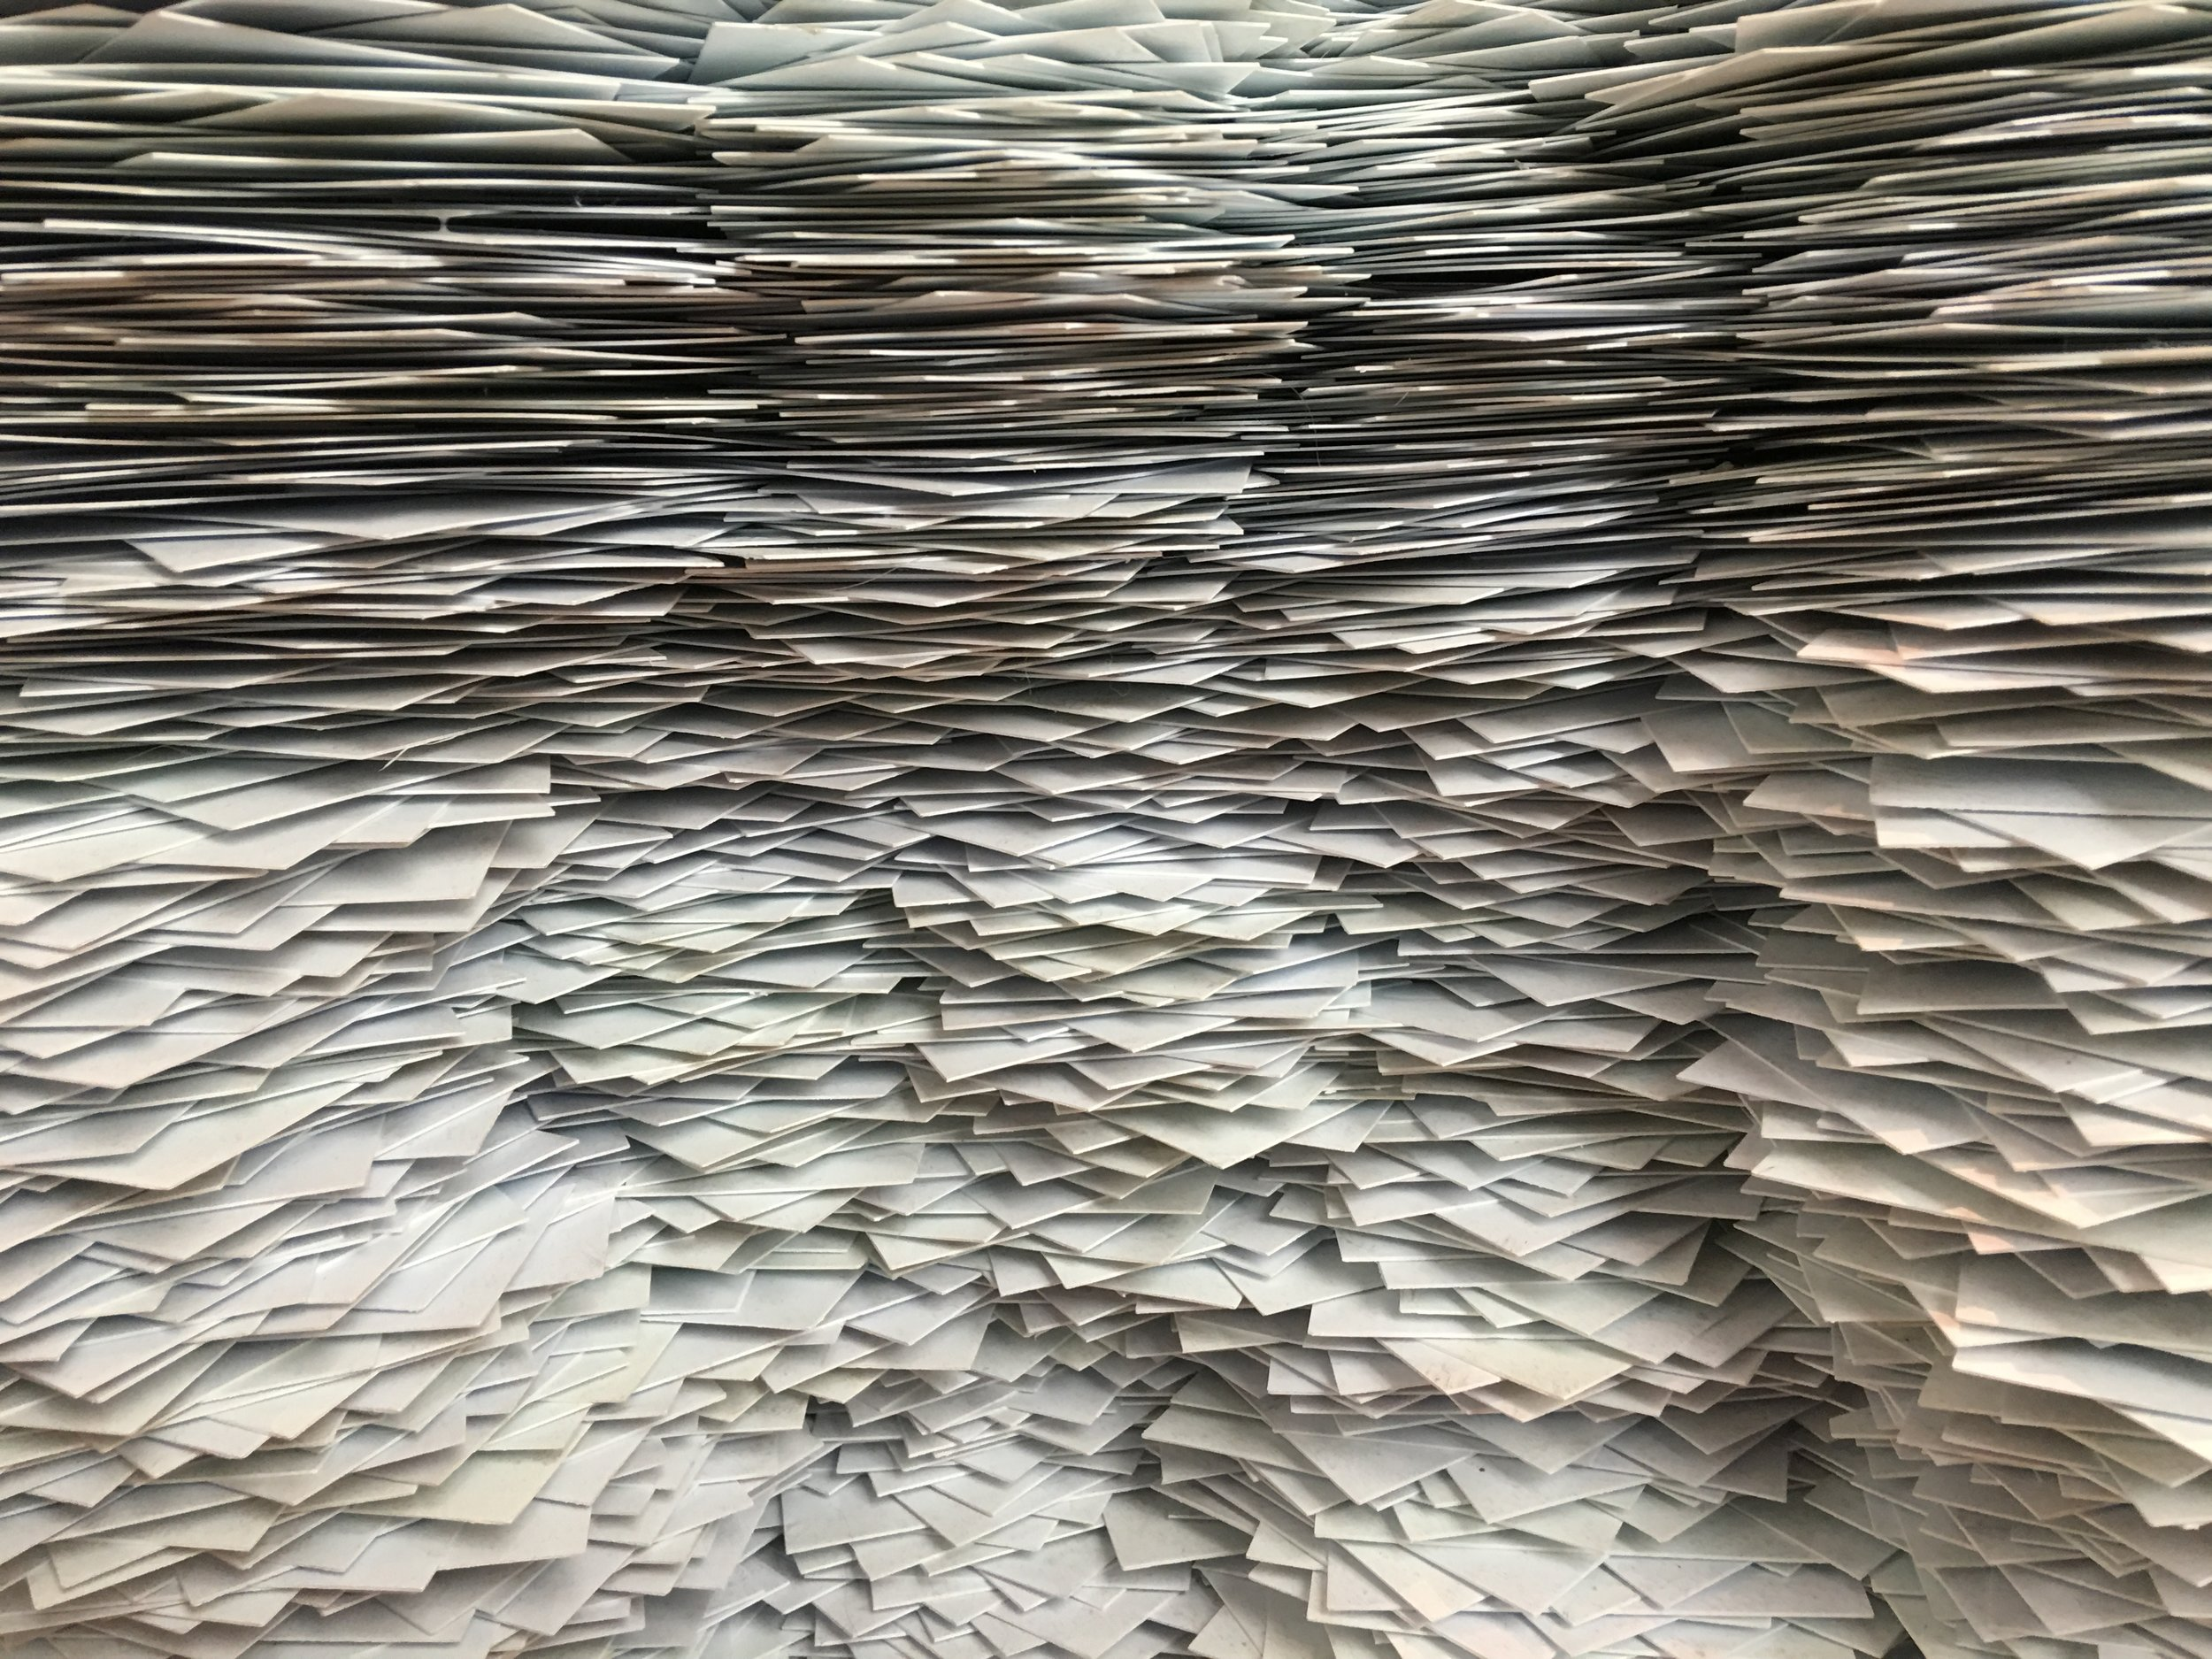 An overwhelming stack of paperwork - similar to what it feels like when getting a mortgage.